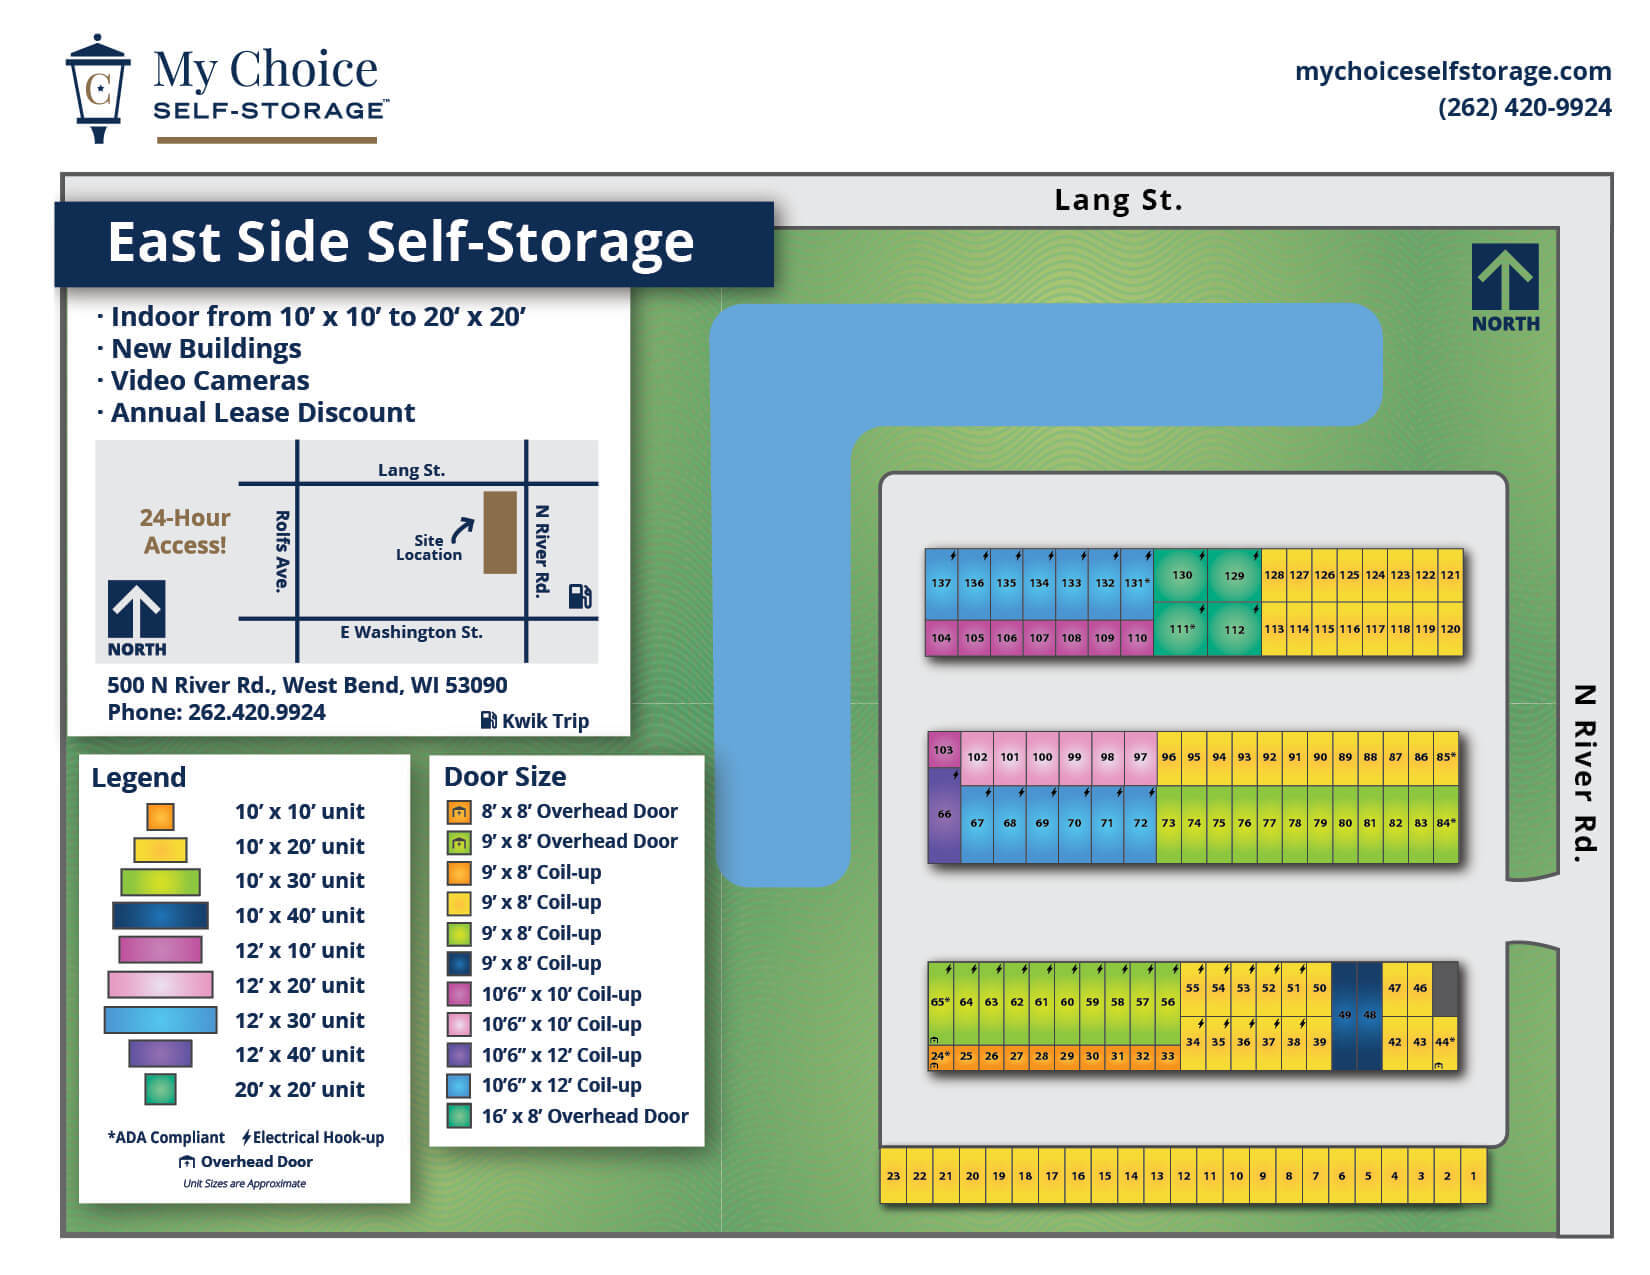 East Side Storage Lot Map May 2021